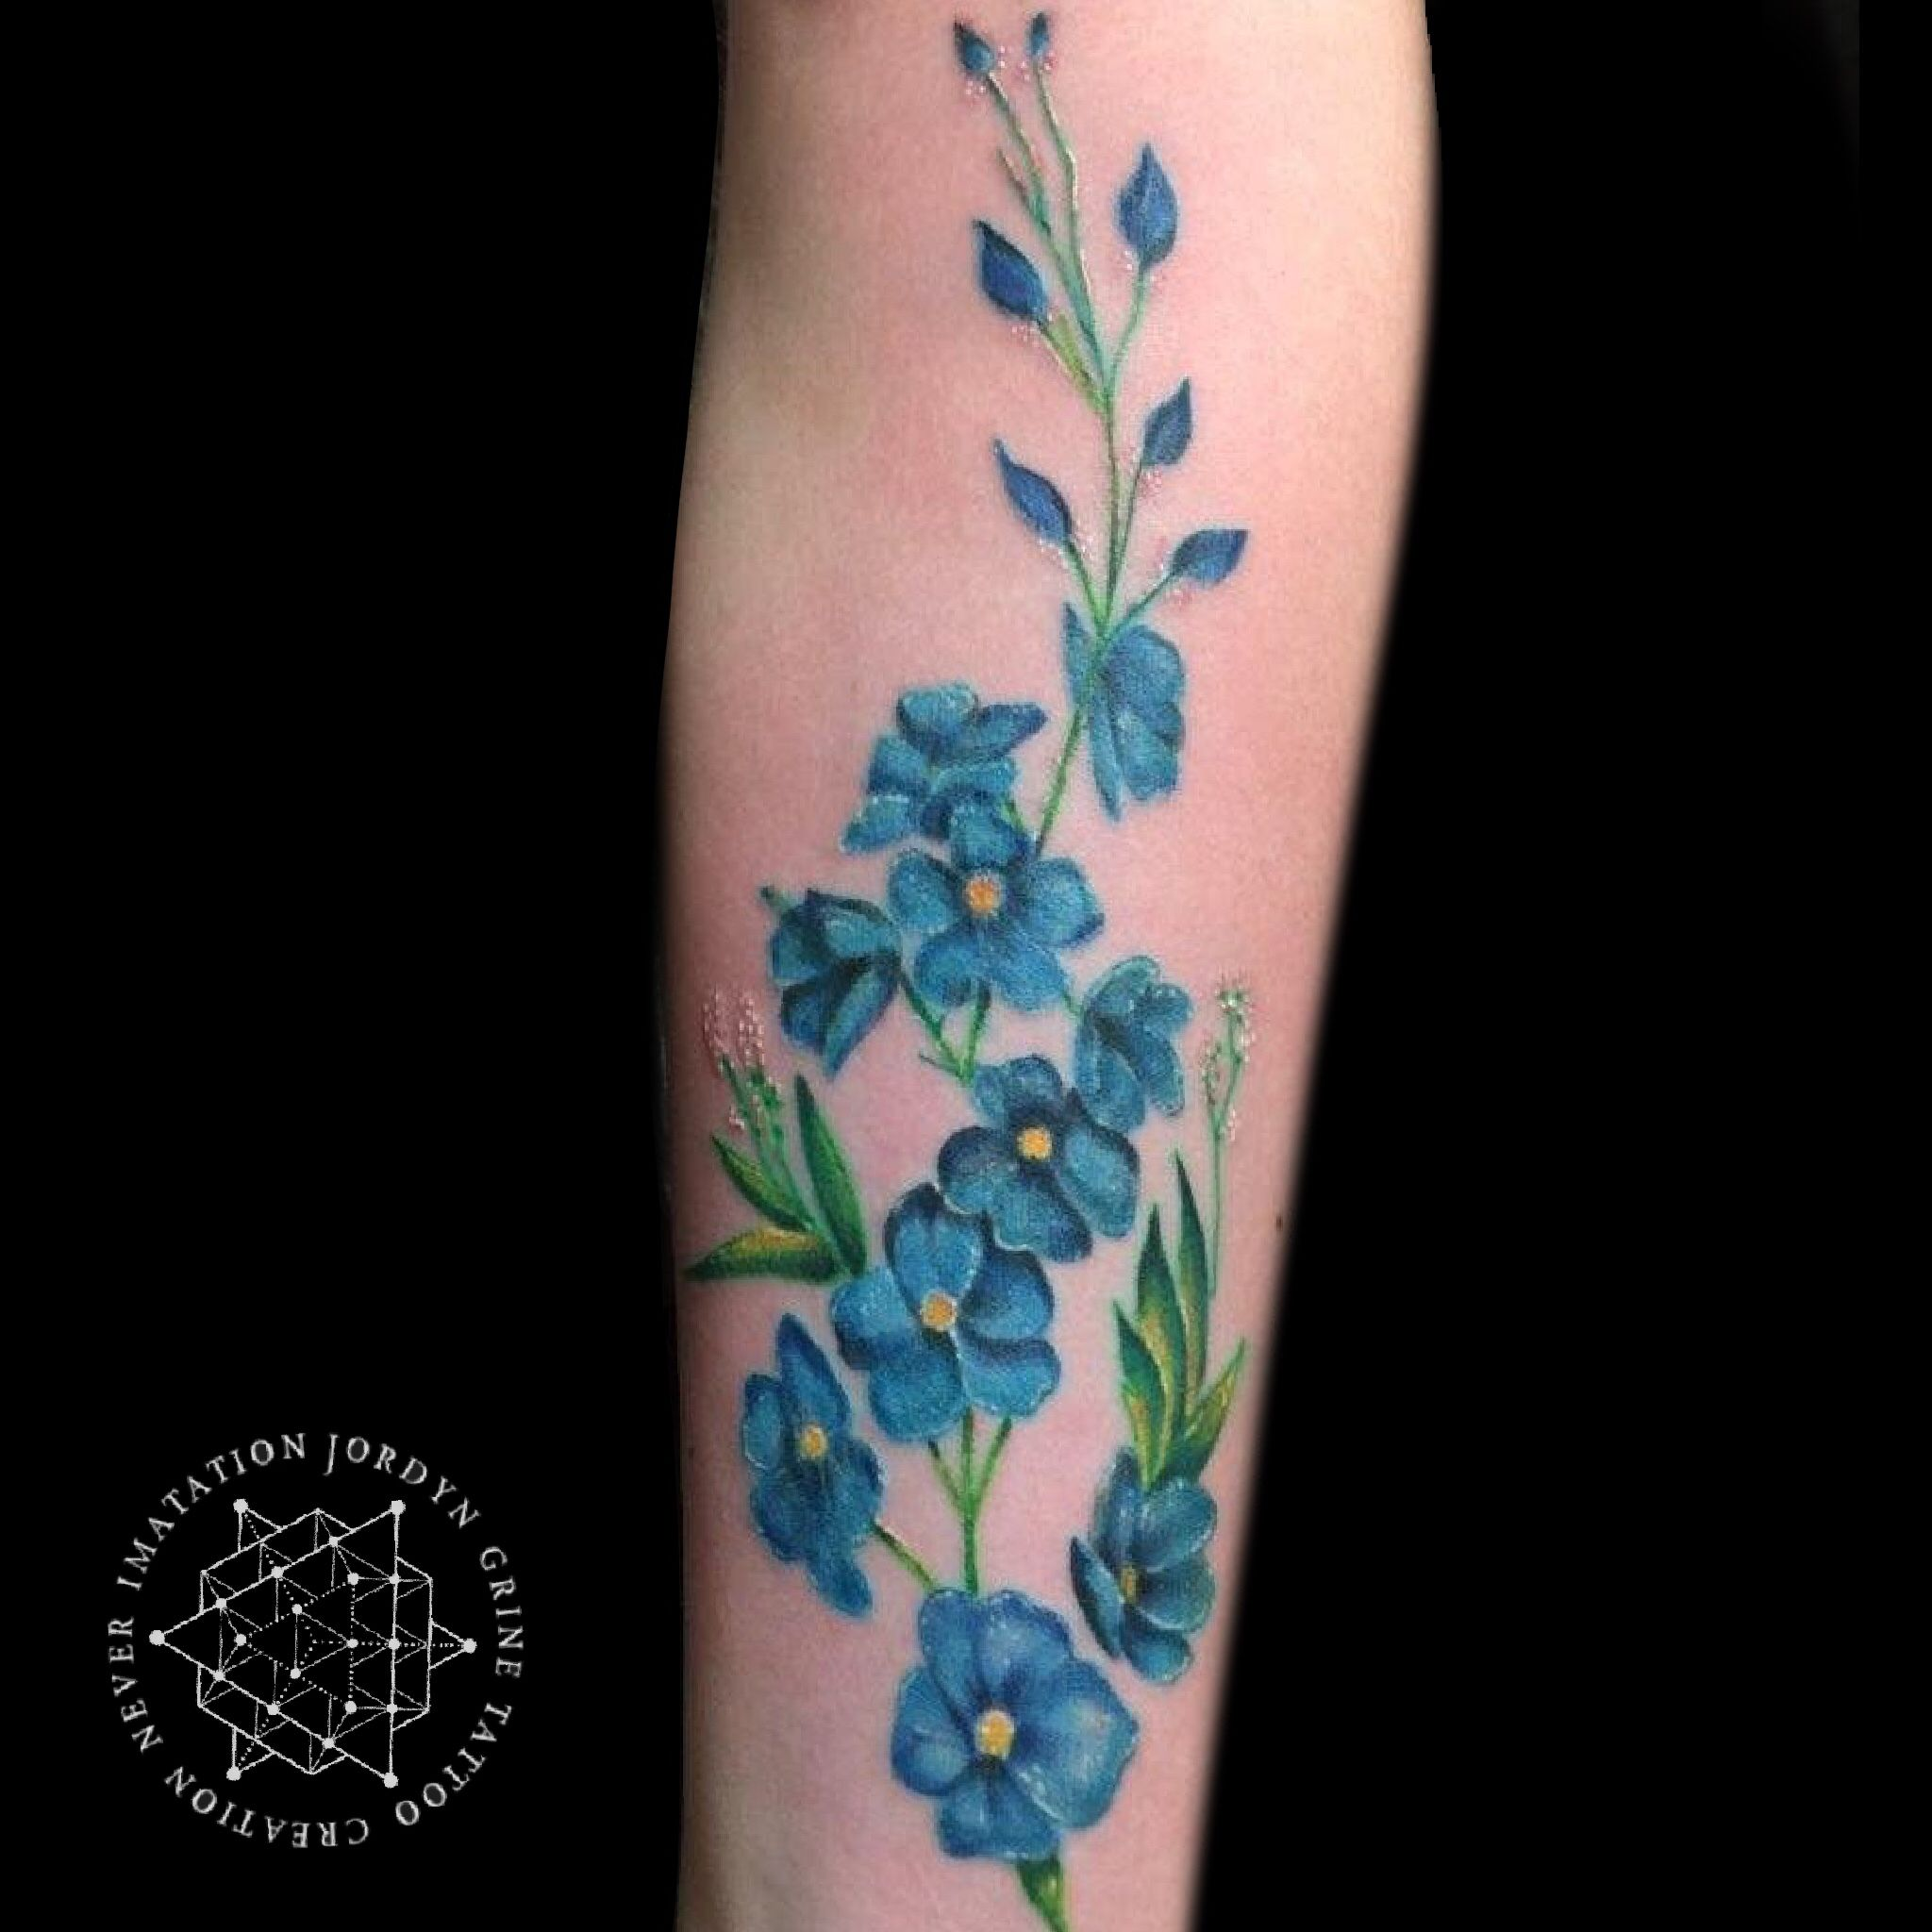 Beautiful color realistic me not tattoo done by